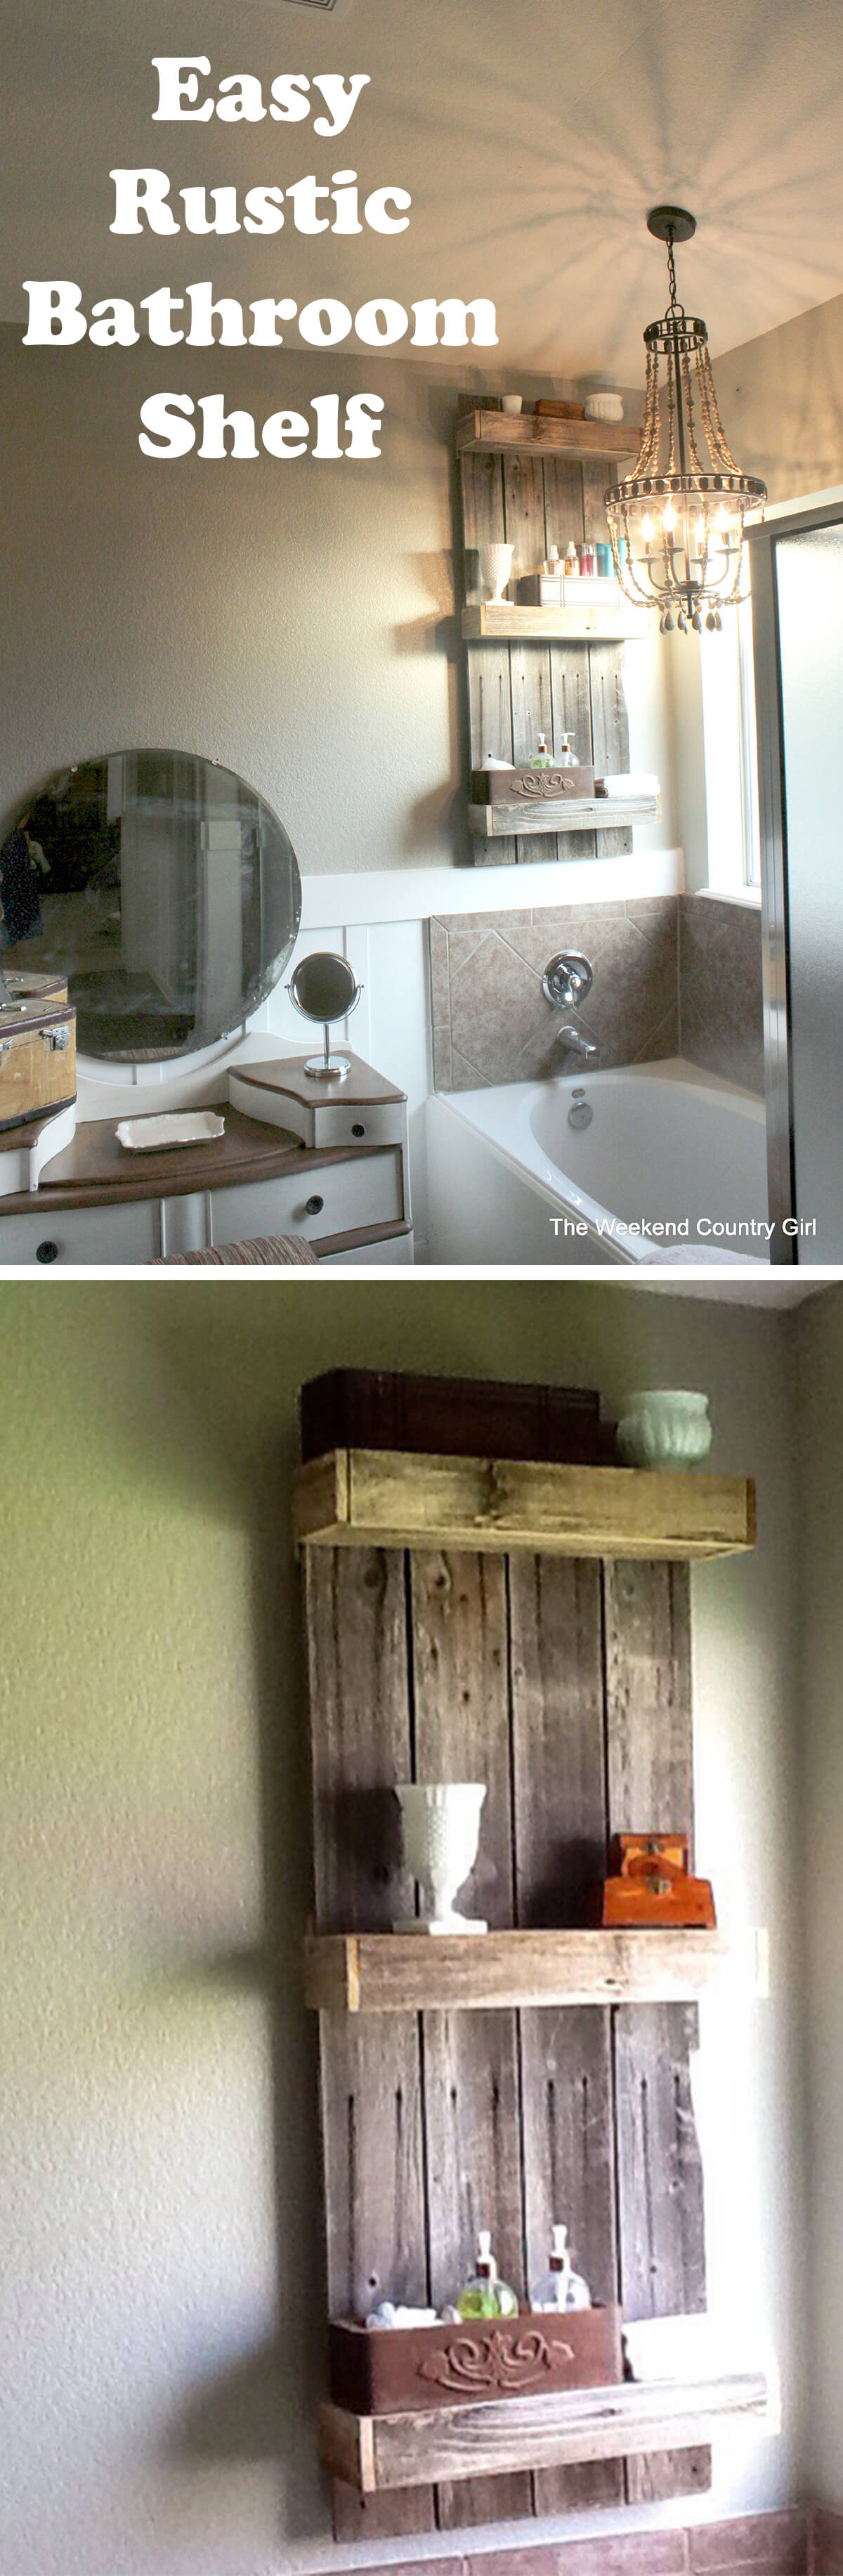 Top Prairie Home Companion Hanging Shelf Diy Bathroom Shelf Ideas 2018 Bathroom Shelf Ideas Target Bathroom Shelf Ideas Diy Designs bathroom Bathroom Shelf Decorations